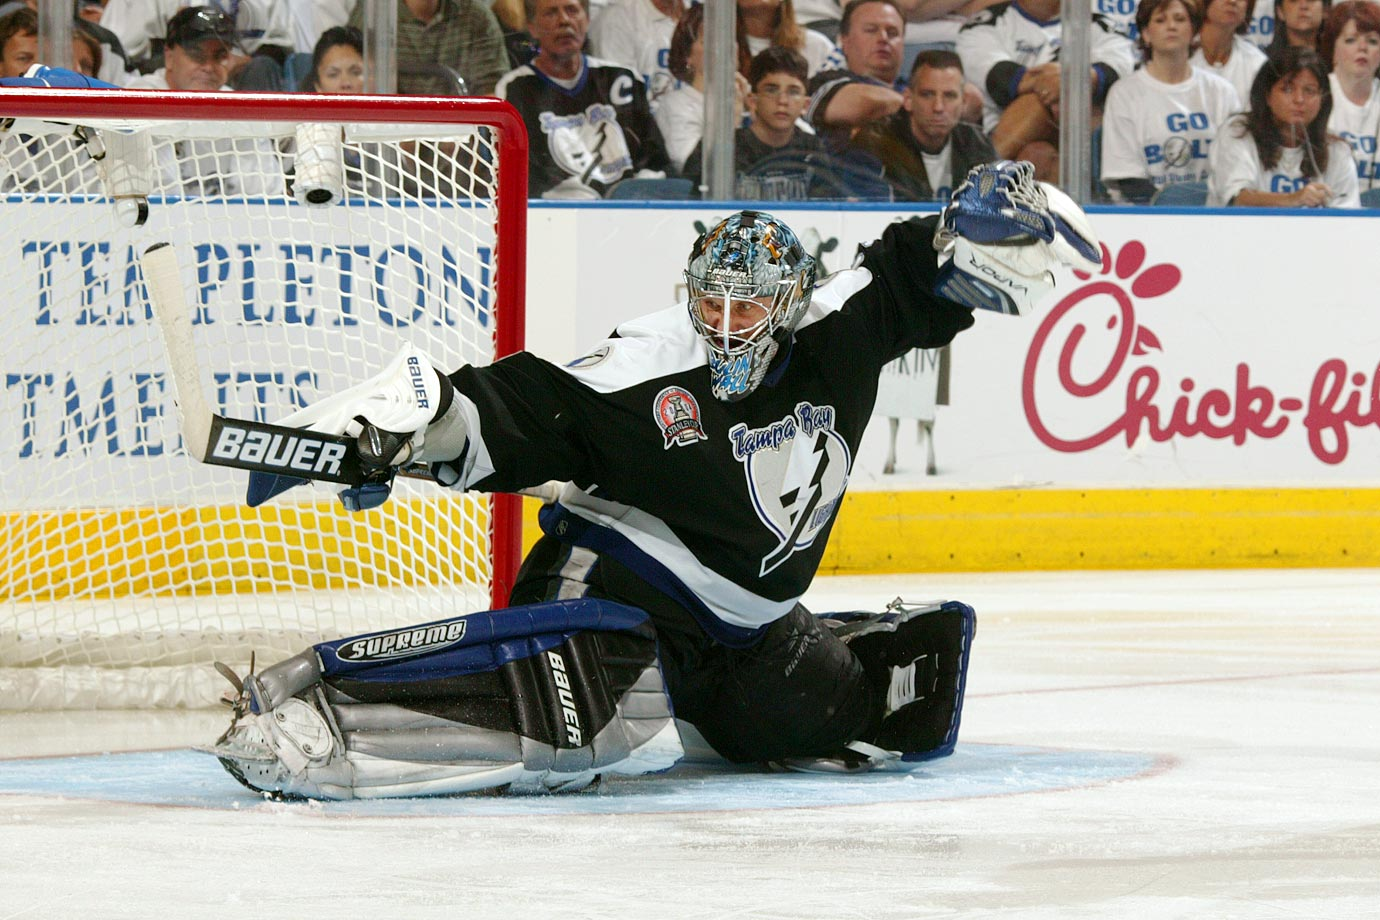 The Bulin Wall suited up for four franchises during his 18-season career, including two stints with the Blackhawks, but it was with the Lightning that he enjoyed his greatest success. Acquired from Phoenix ahead of the 2001 trade deadline, he spent four years in Tampa, making two All-Star Game appearances and backstopping the Bolts to the 2004 Stanley Cup. He posted five shutouts that spring, including a 29-save effort to lead Tampa to a 1-0 win over Calgary in Game 4 of the Cup finals.